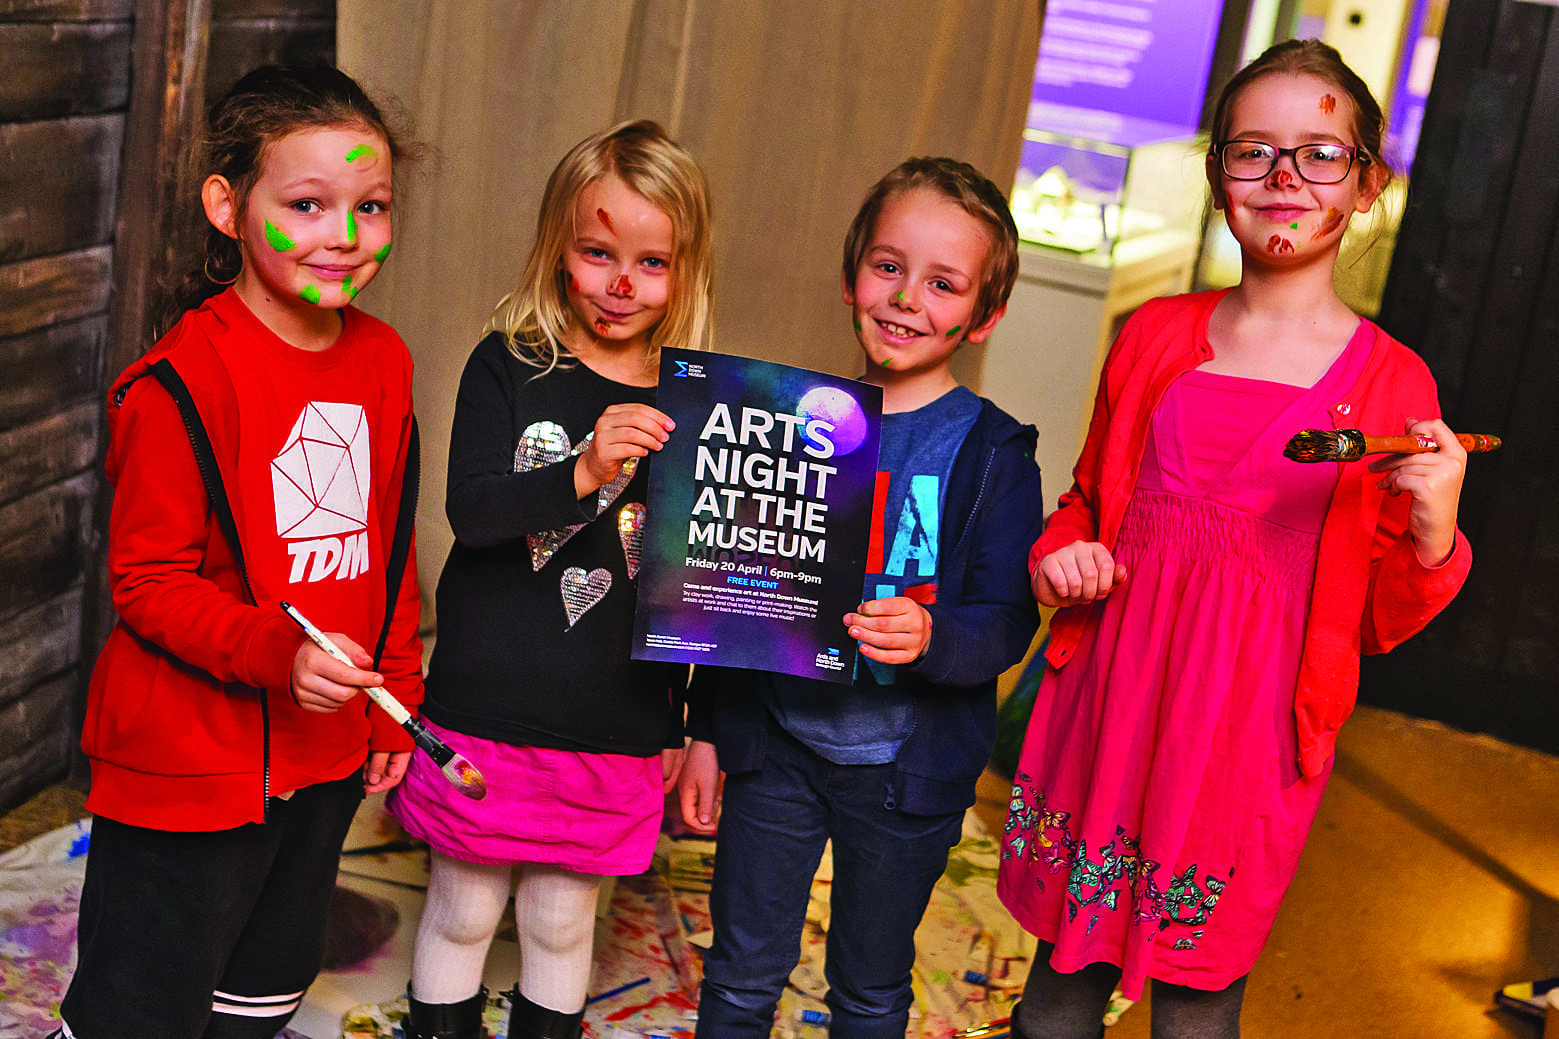 Unleash your inner artist at Arts Night At The Museum